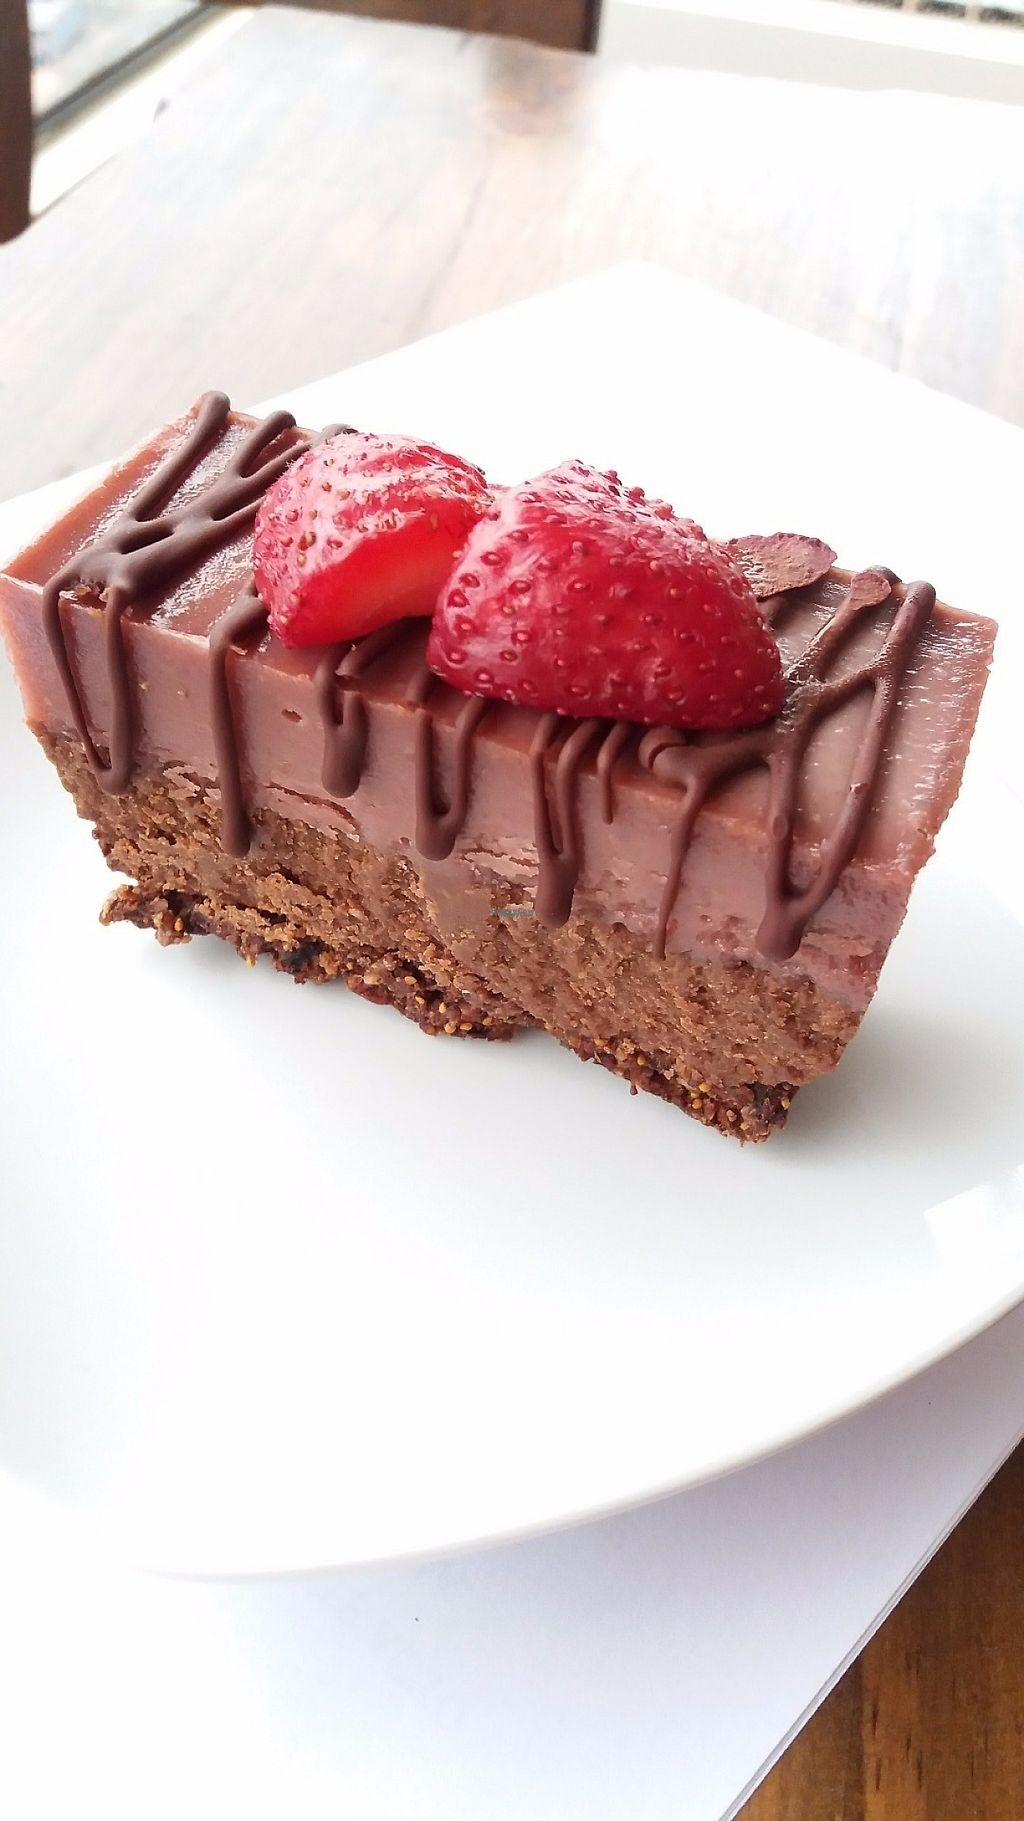 "Photo of Raw Cafe - Independencia  by <a href=""/members/profile/Arta"">Arta</a> <br/>Strawberry chocolate cheesecake <br/> March 20, 2017  - <a href='/contact/abuse/image/41640/238901'>Report</a>"